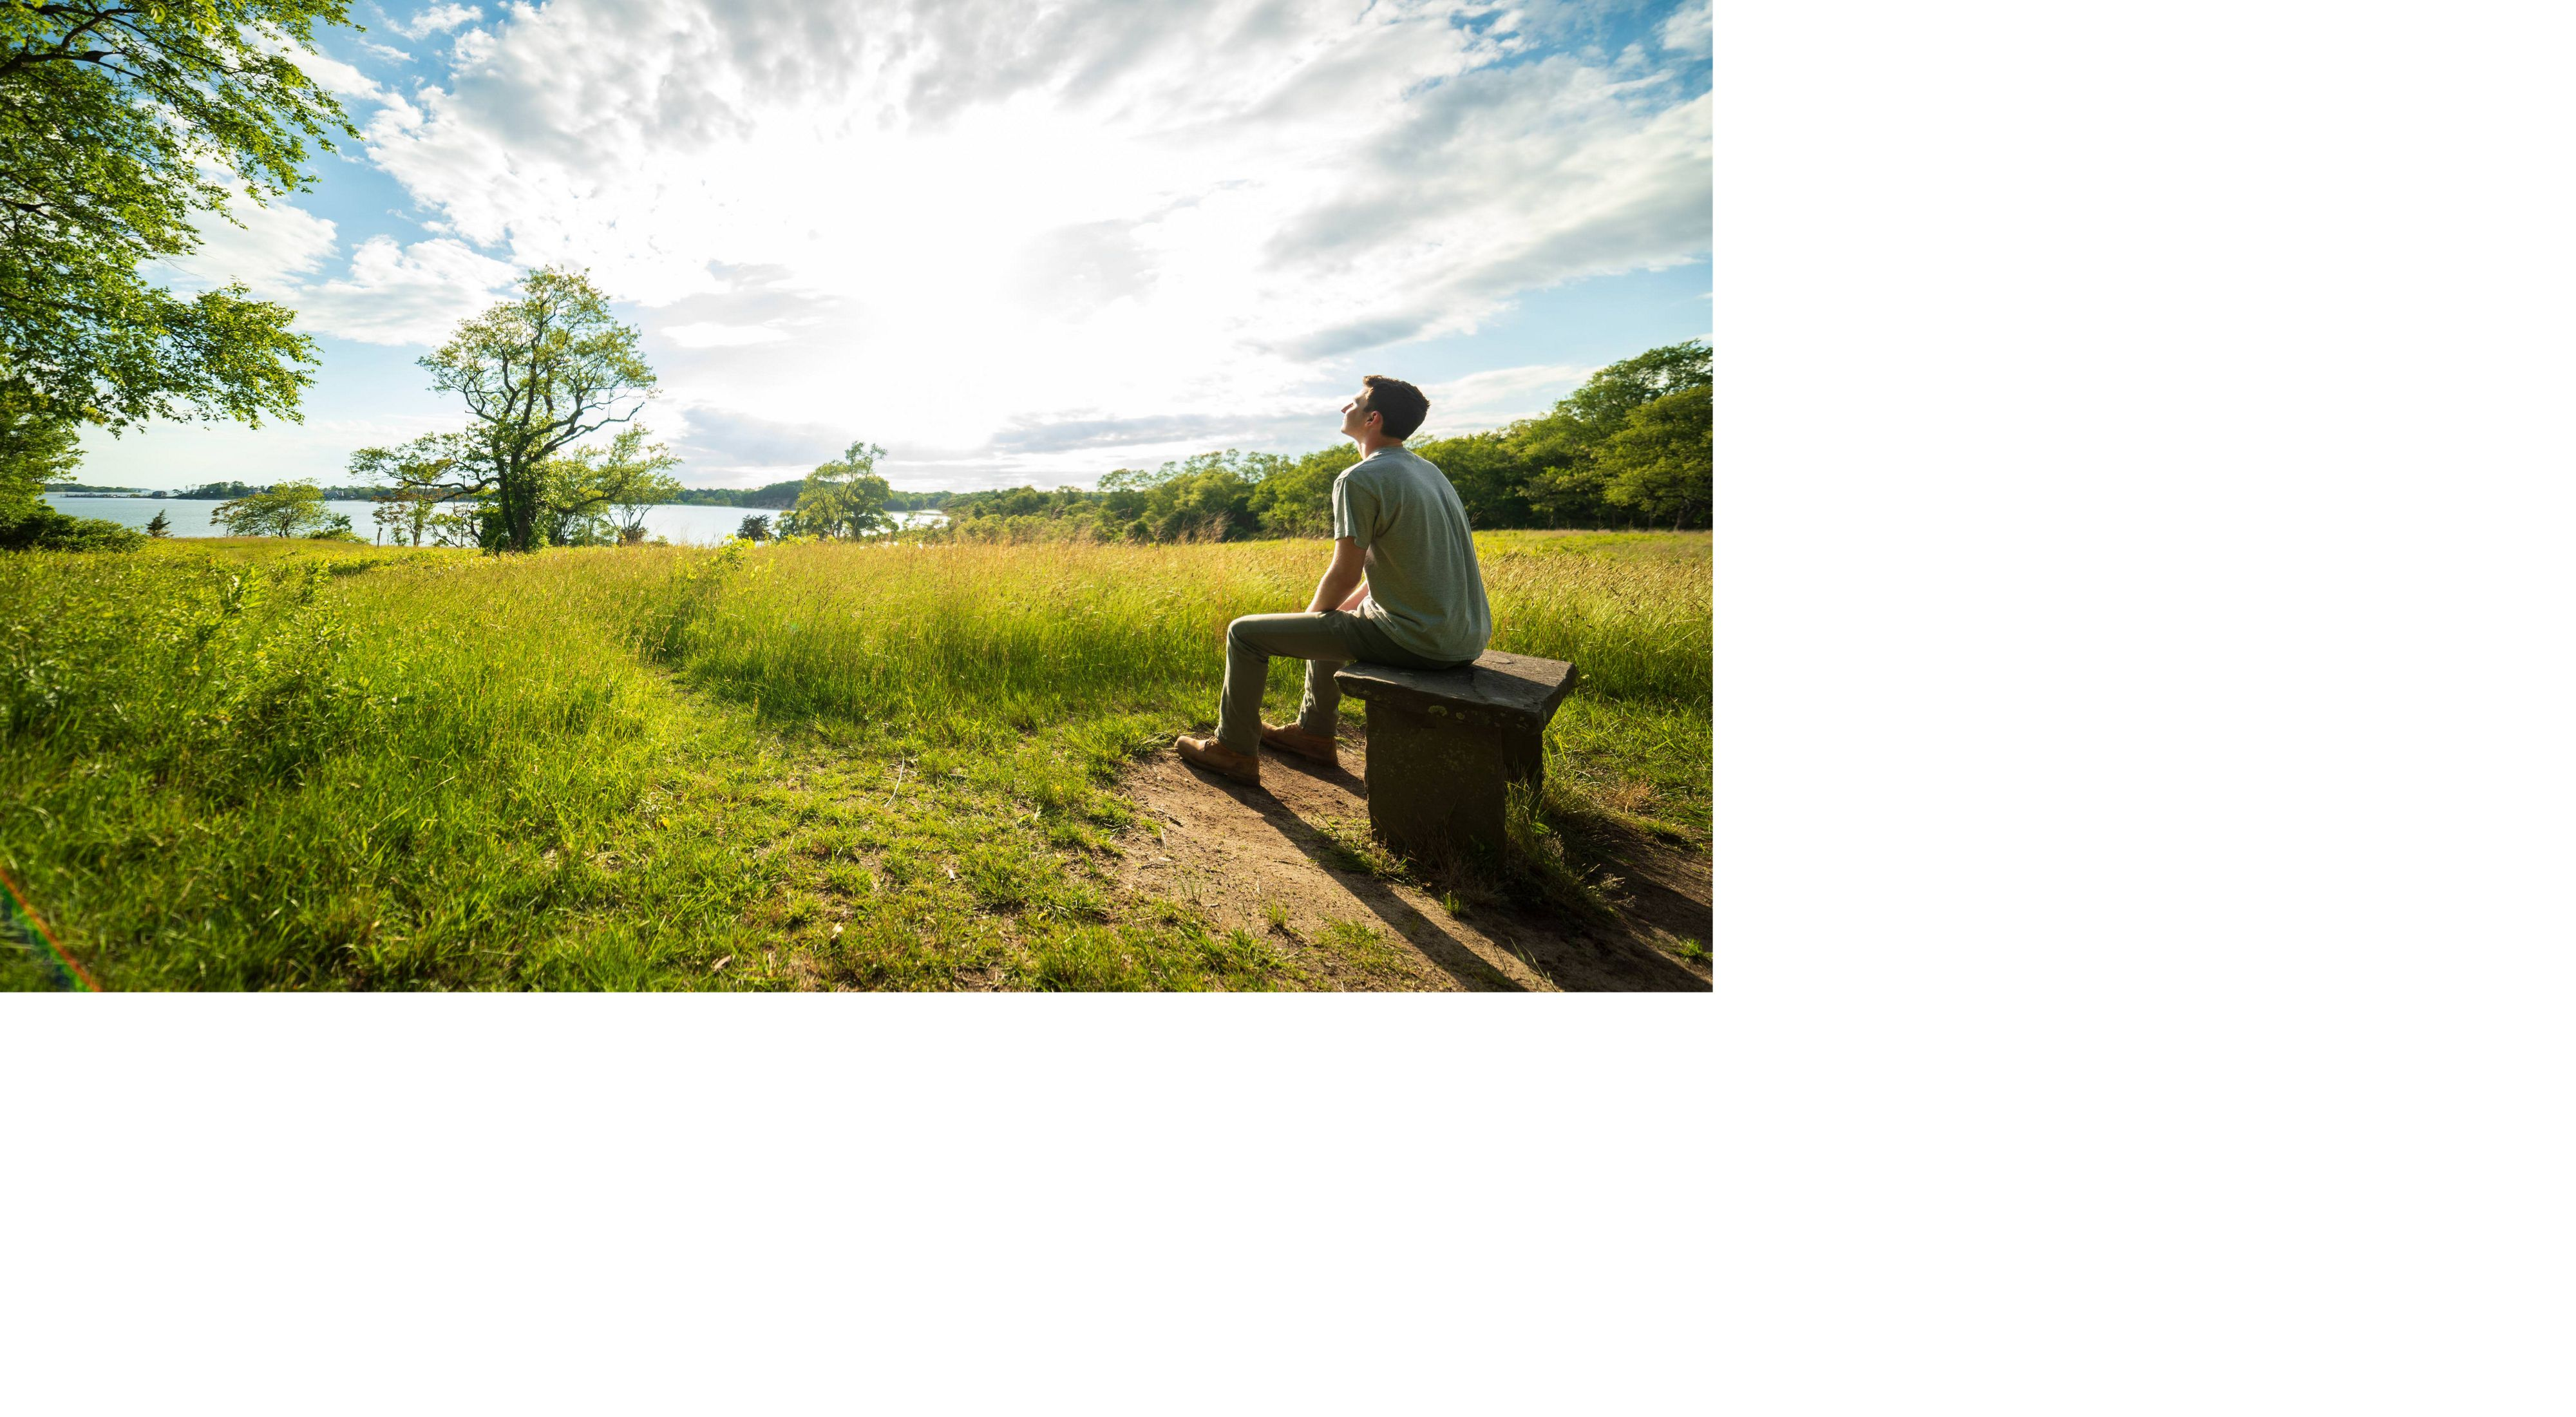 man sitting near a field